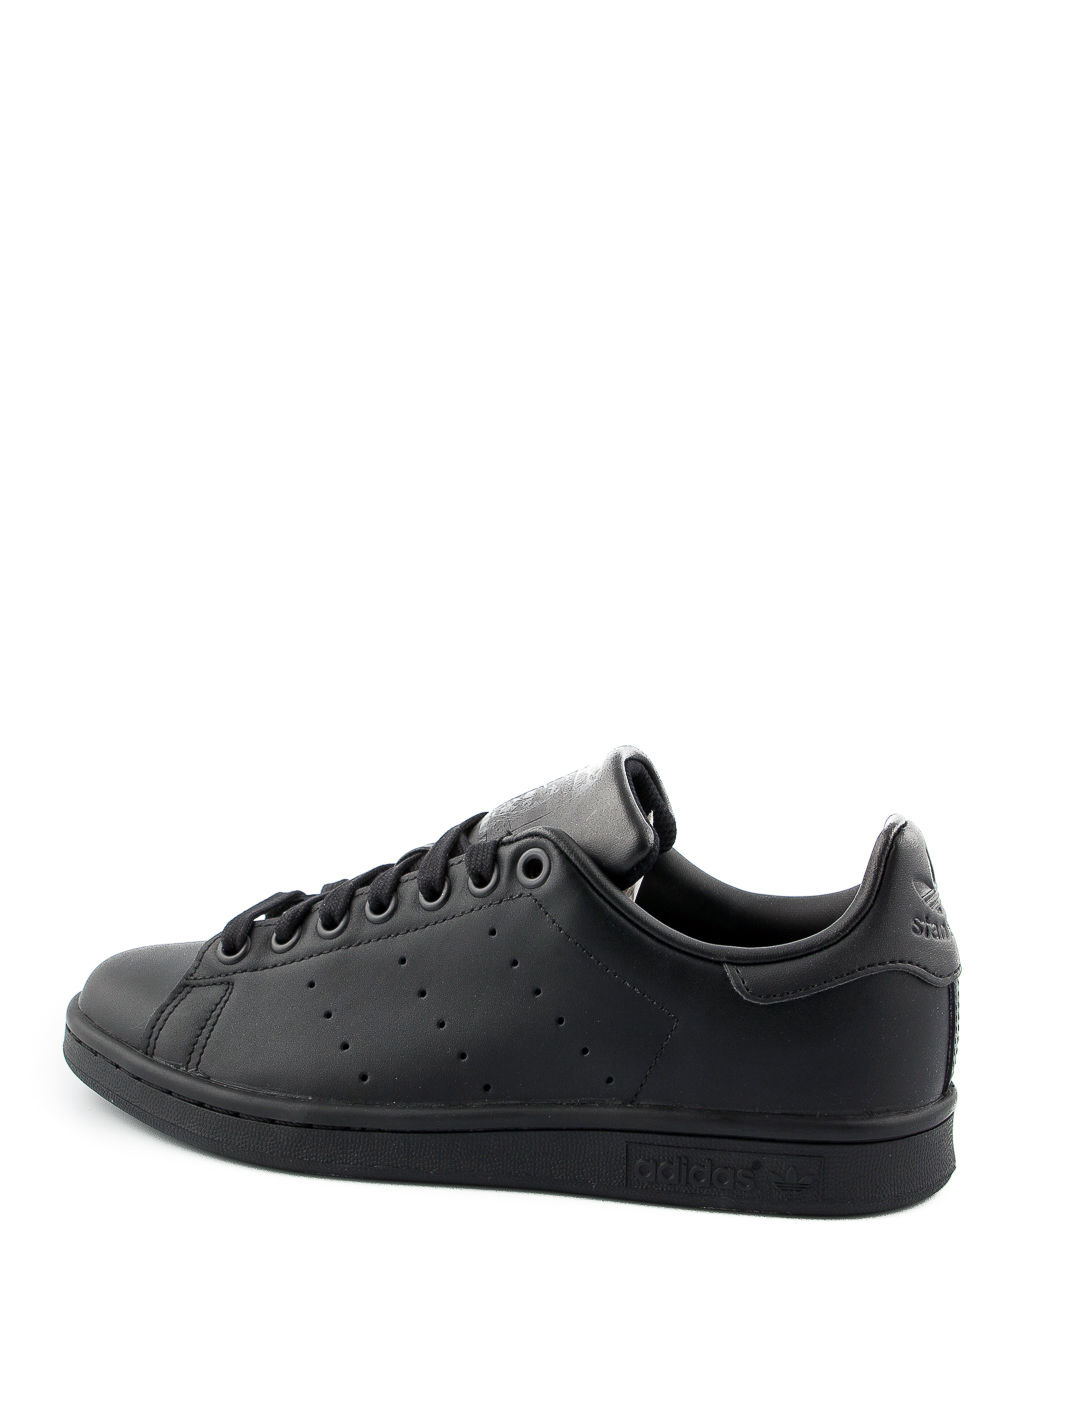 tennis adidas stan smith femme new balance soldes homme. Black Bedroom Furniture Sets. Home Design Ideas